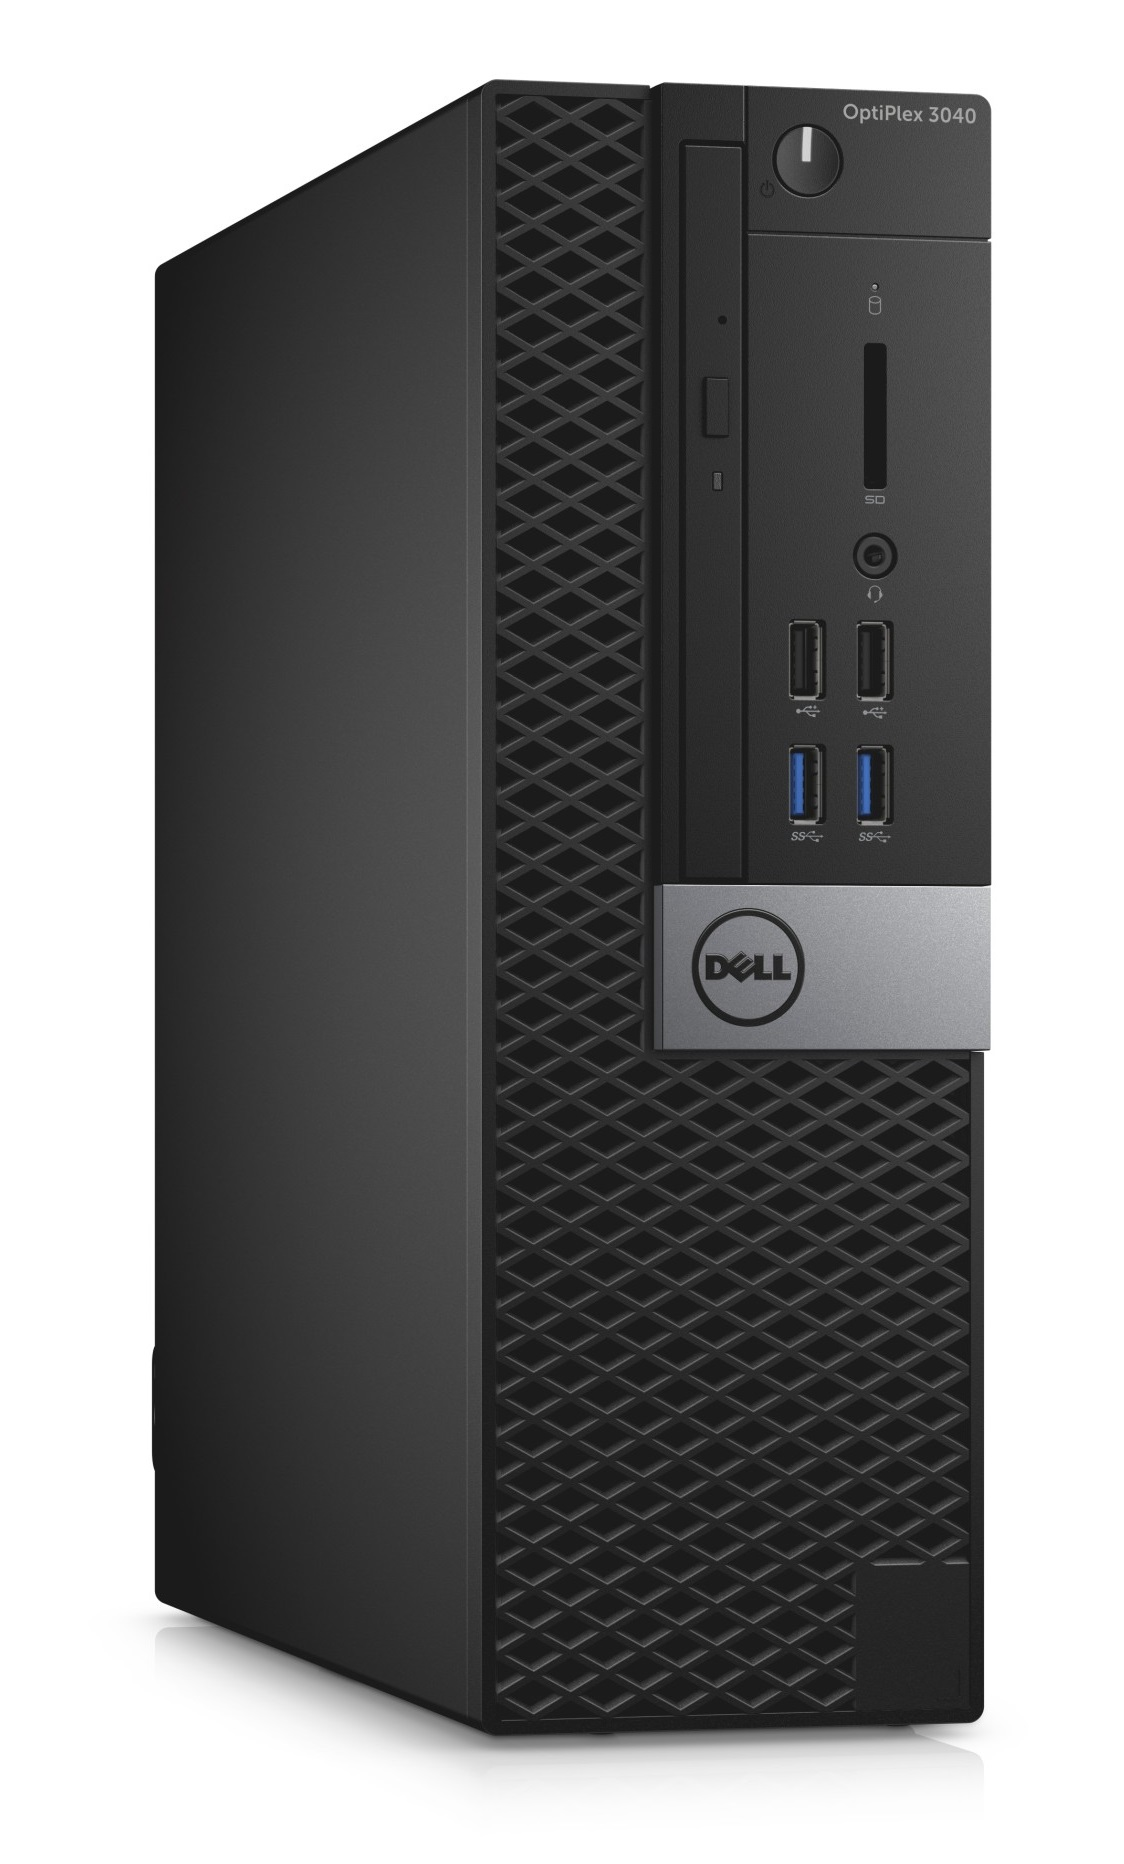 DELL OptiPlex SFF 3040 Core i5-6500/8GB/500GB/Intel HD/Win7 PRO - Win 10 64bit/3Yr NBD